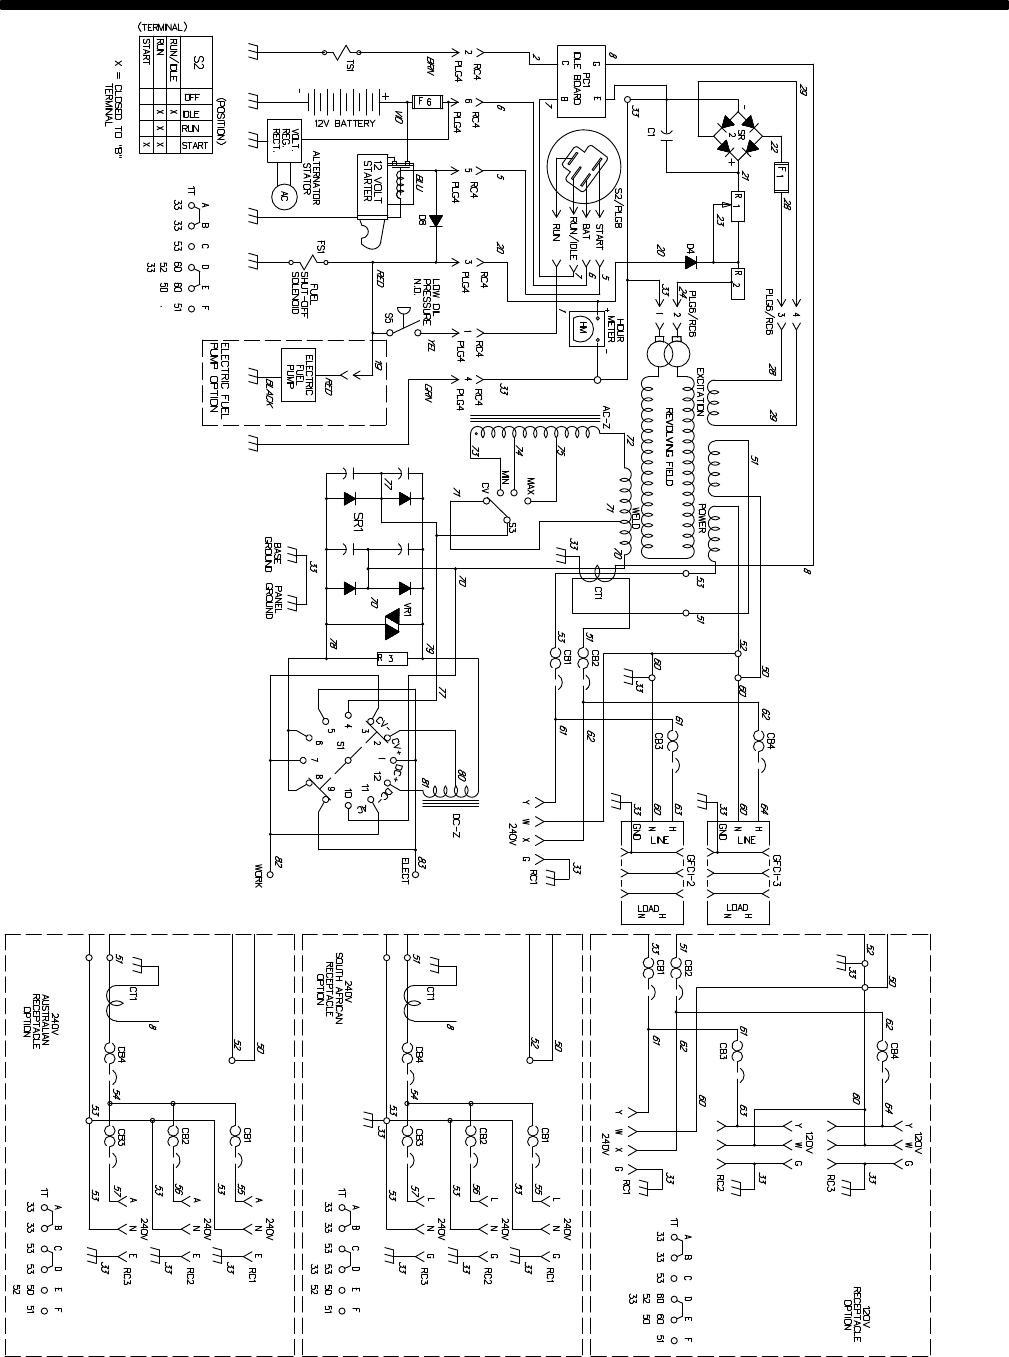 d3bdac77 e713 43b4 a88f 6532334b38fe bg16 miller bobcat wiring diagram miller wiring diagrams instruction miller bobcat 250 wiring diagram at gsmx.co